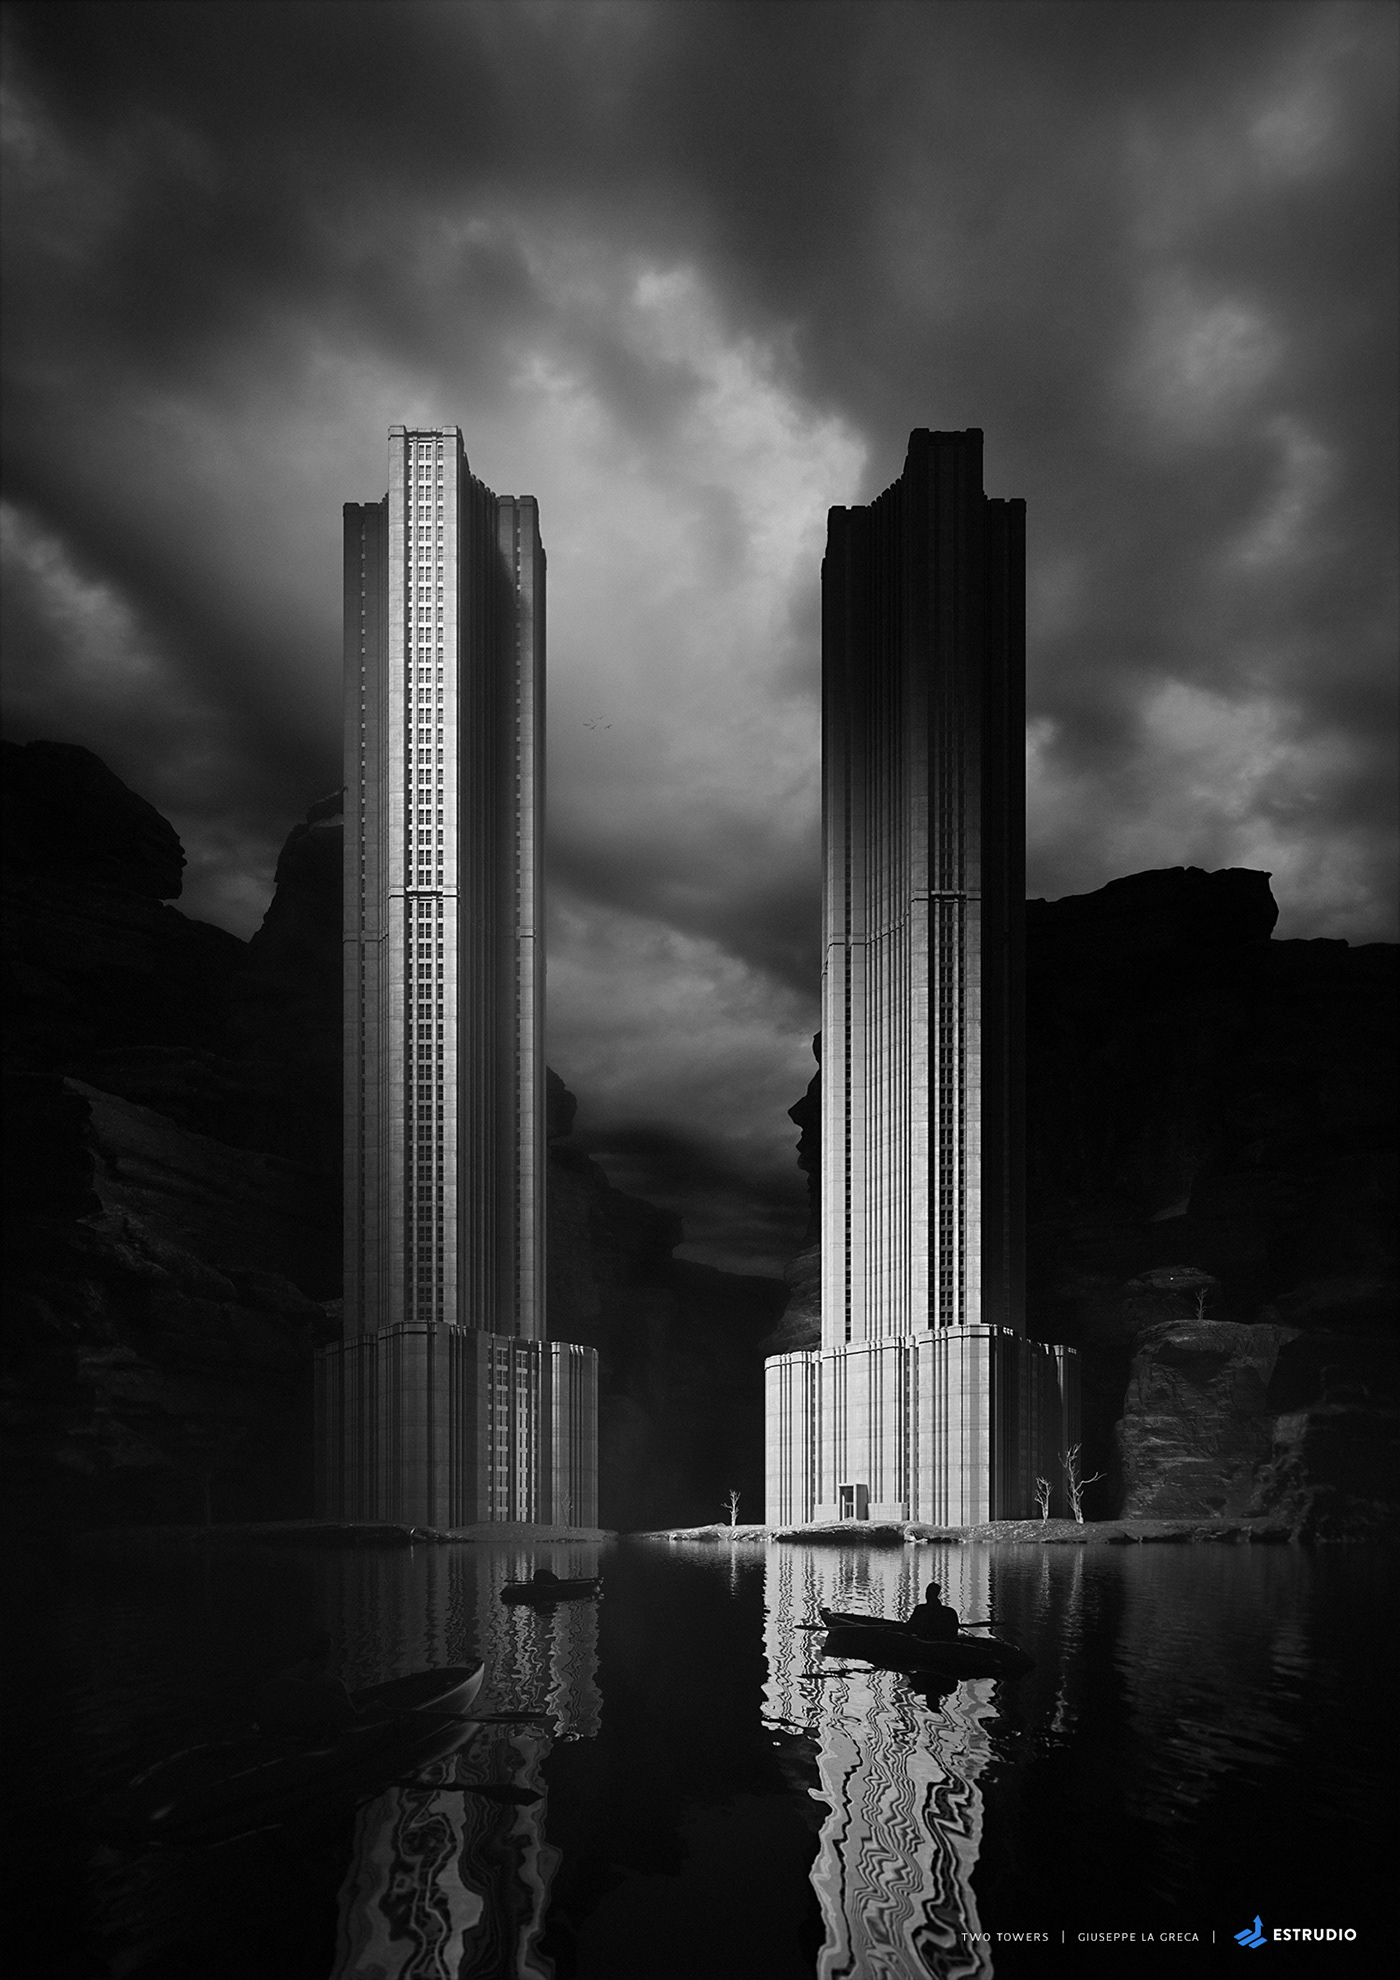 Droquis Ferriss hugh lord ring towers